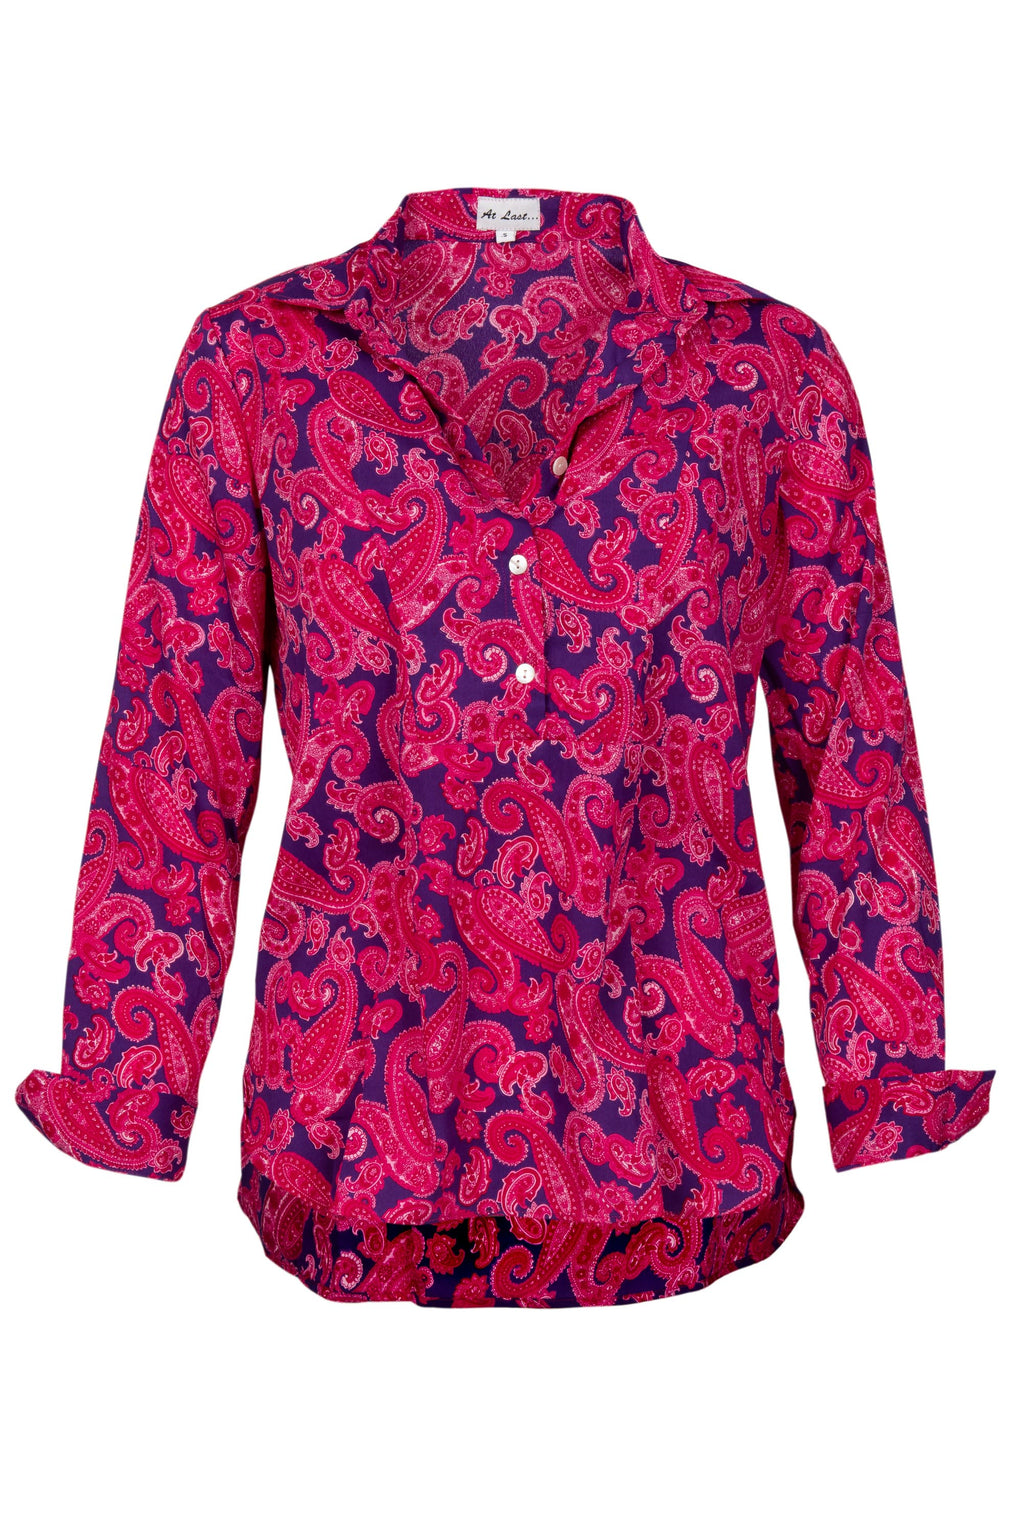 Soho Shirt with Back Detail - Pink and Purple